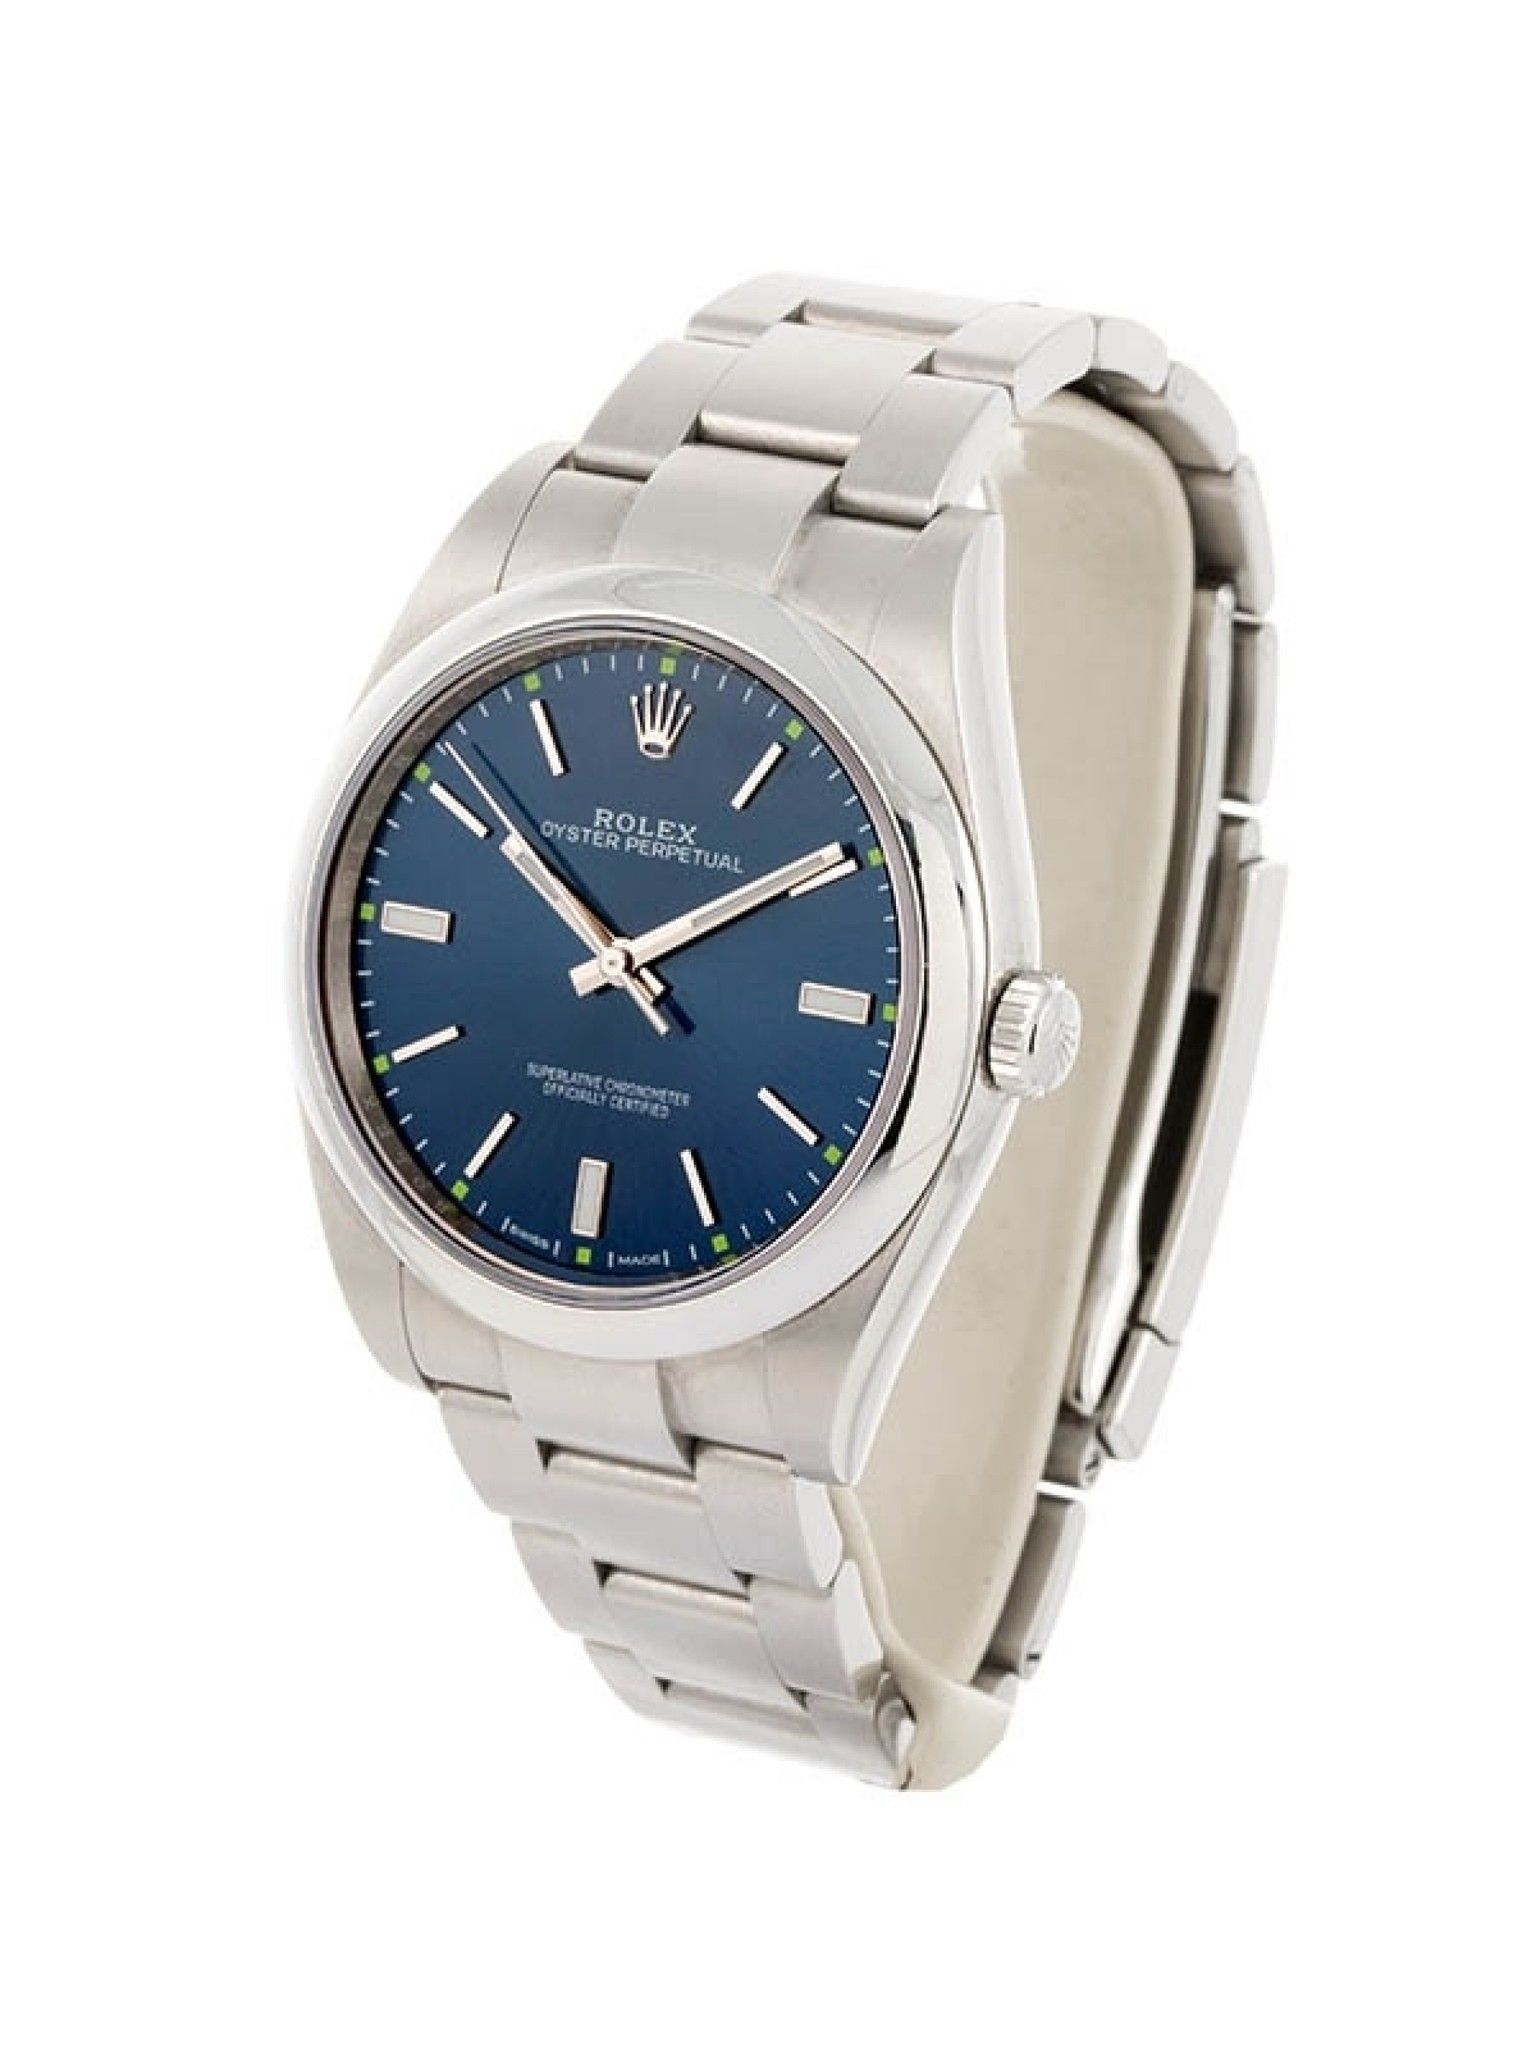 ROLEX OYSTER PERPETUAL 39MM IN ACCIAIO REFERENZA 114300